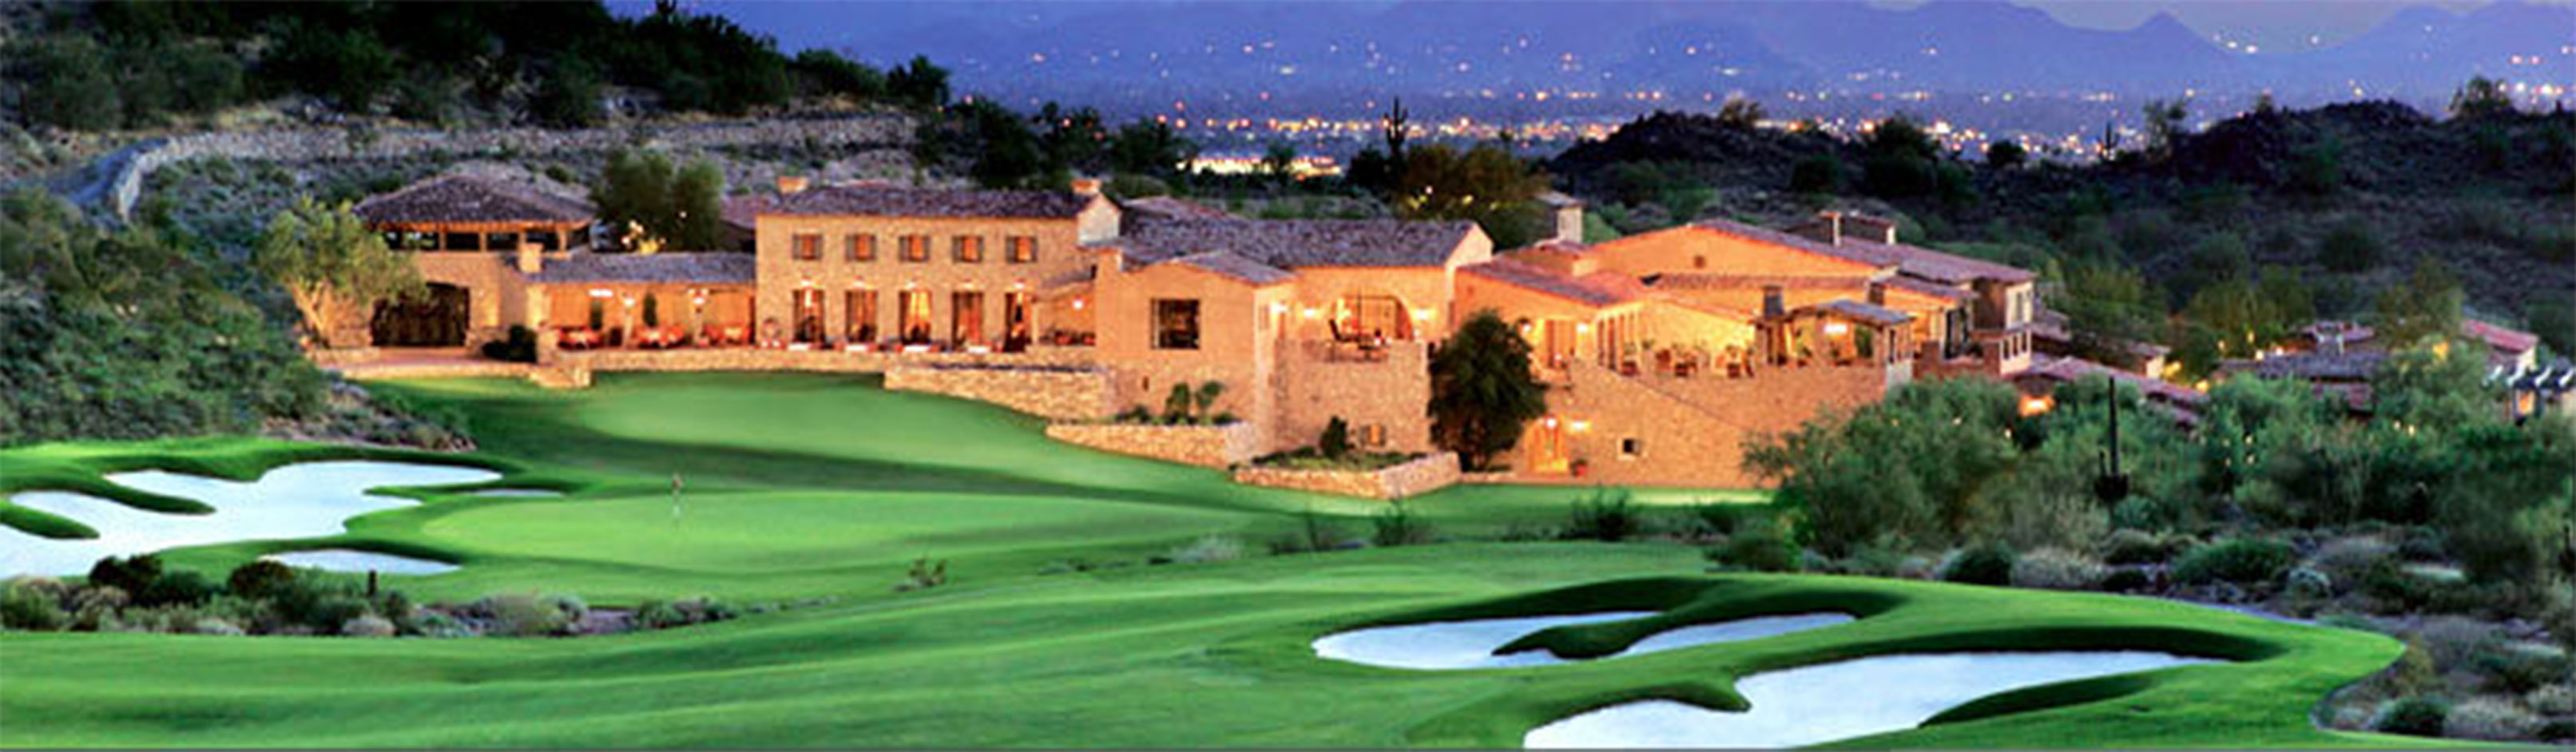 Dc ranch scottsdale 85255 a diamond in the desert for Silverleaf com